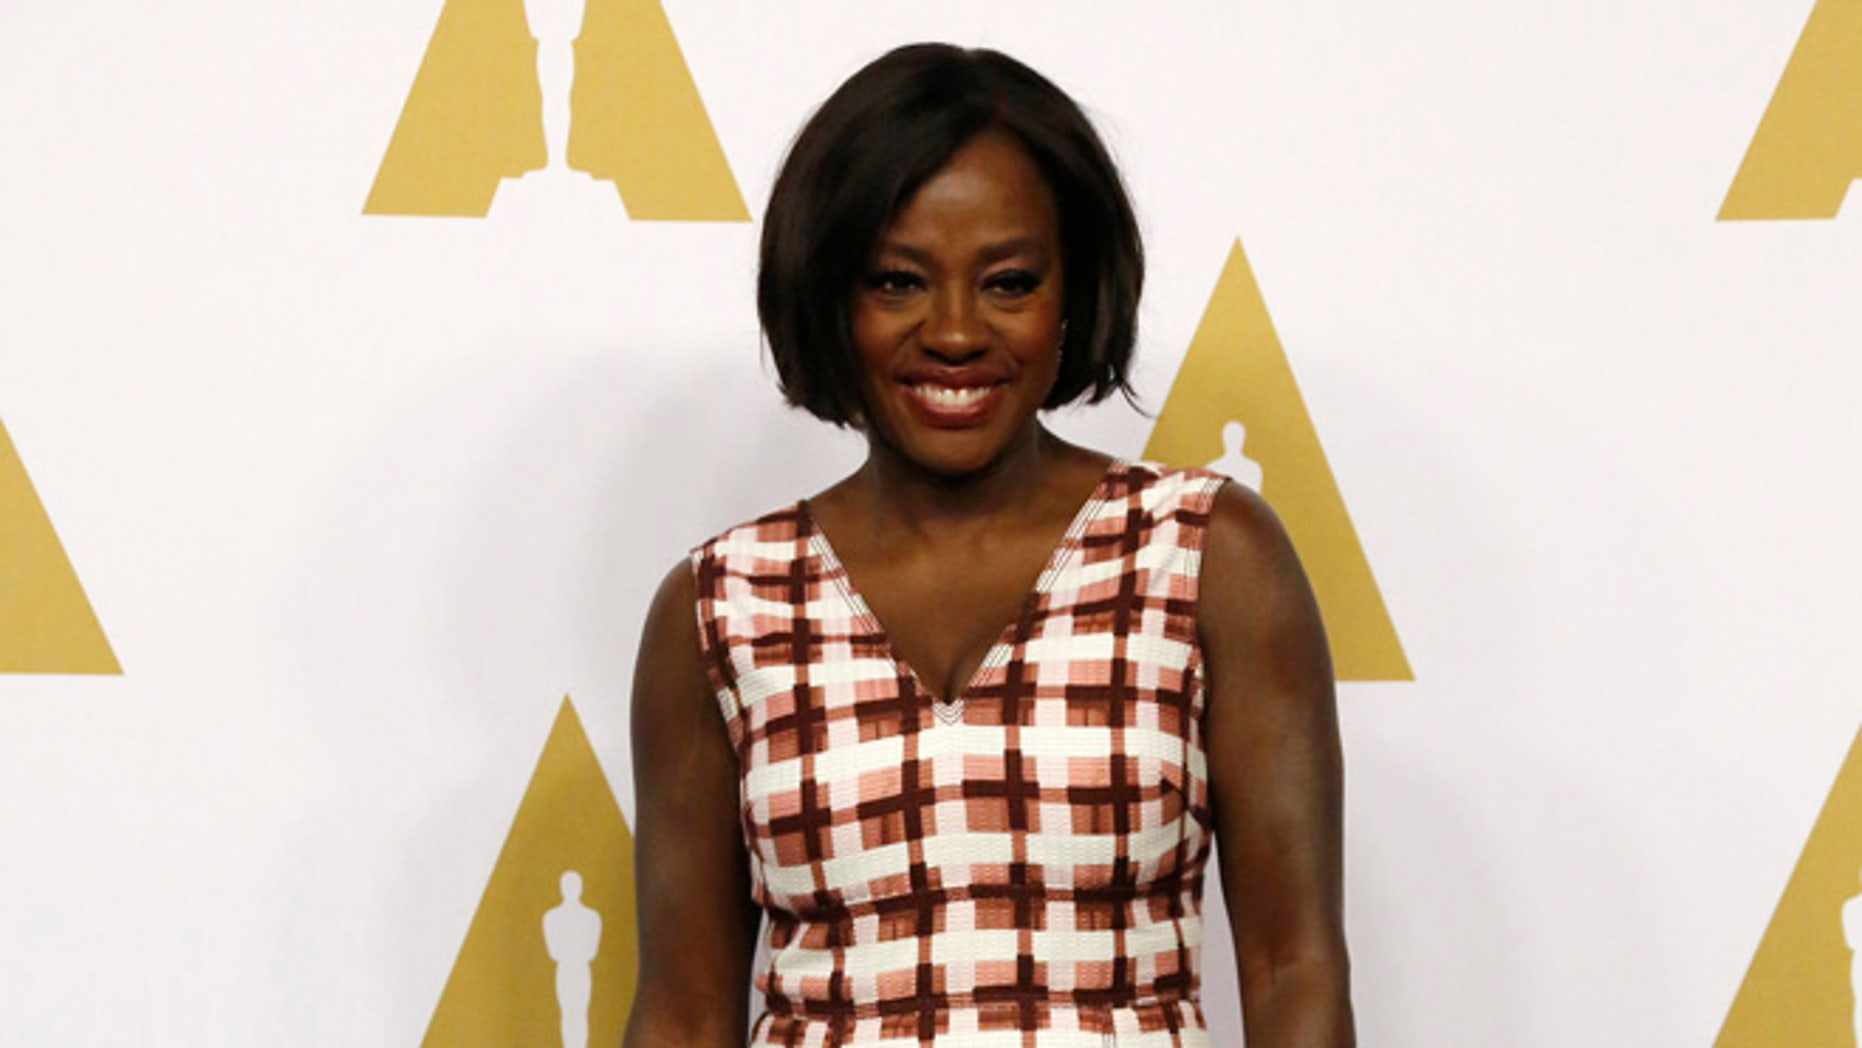 Viola Davis is the frontrunner to win this year's Best Supporting Actress at the Oscars.